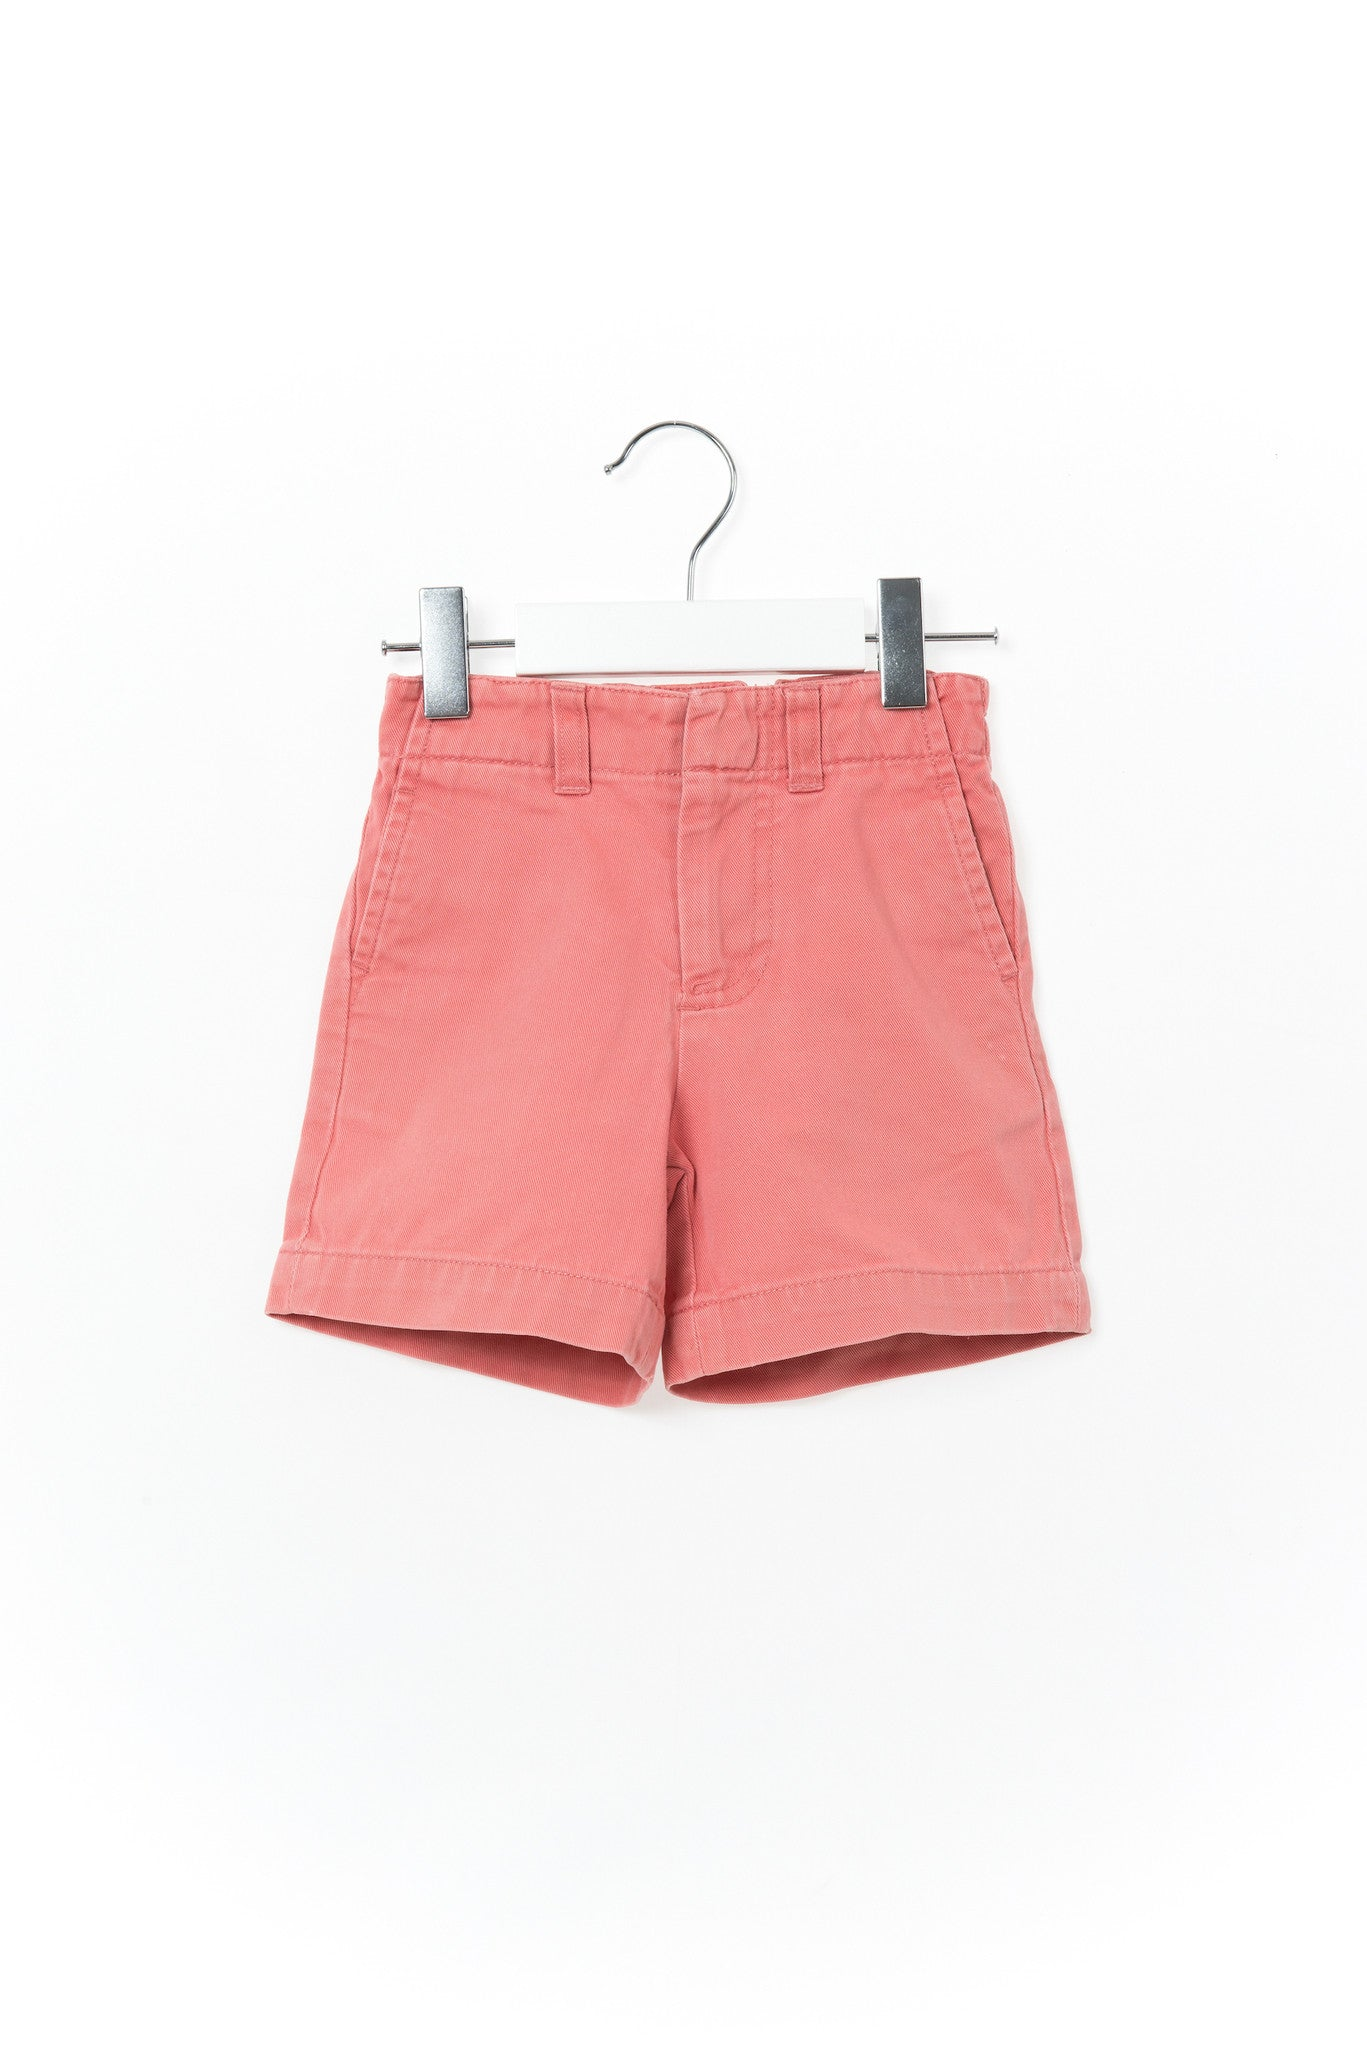 Shorts 12M, Polo Ralph Lauren at Retykle - Online Baby & Kids Clothing Up to 90% Off